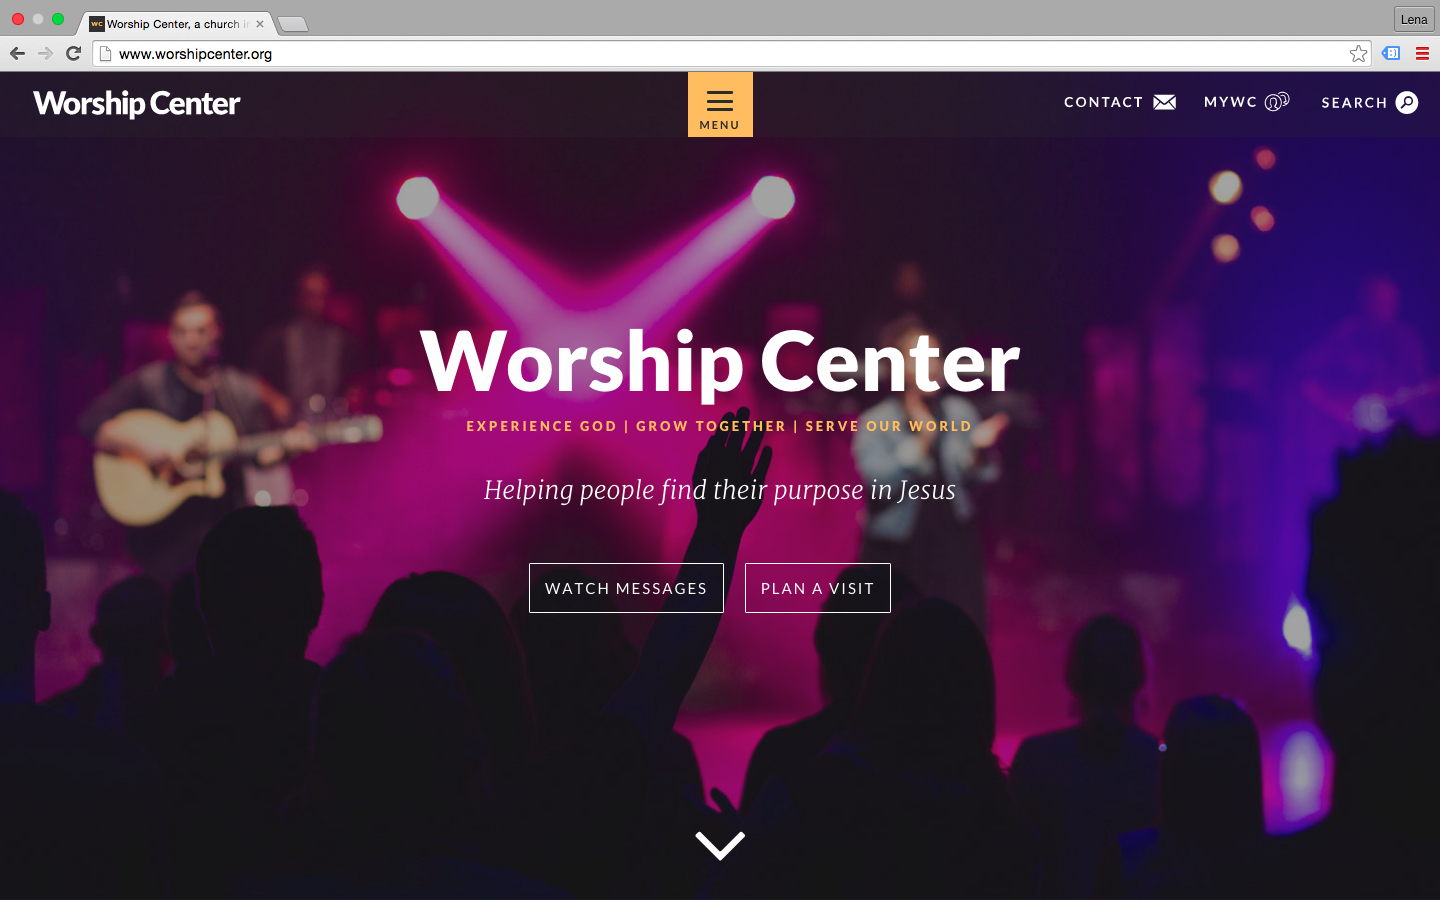 Image: Worship Center Webstie